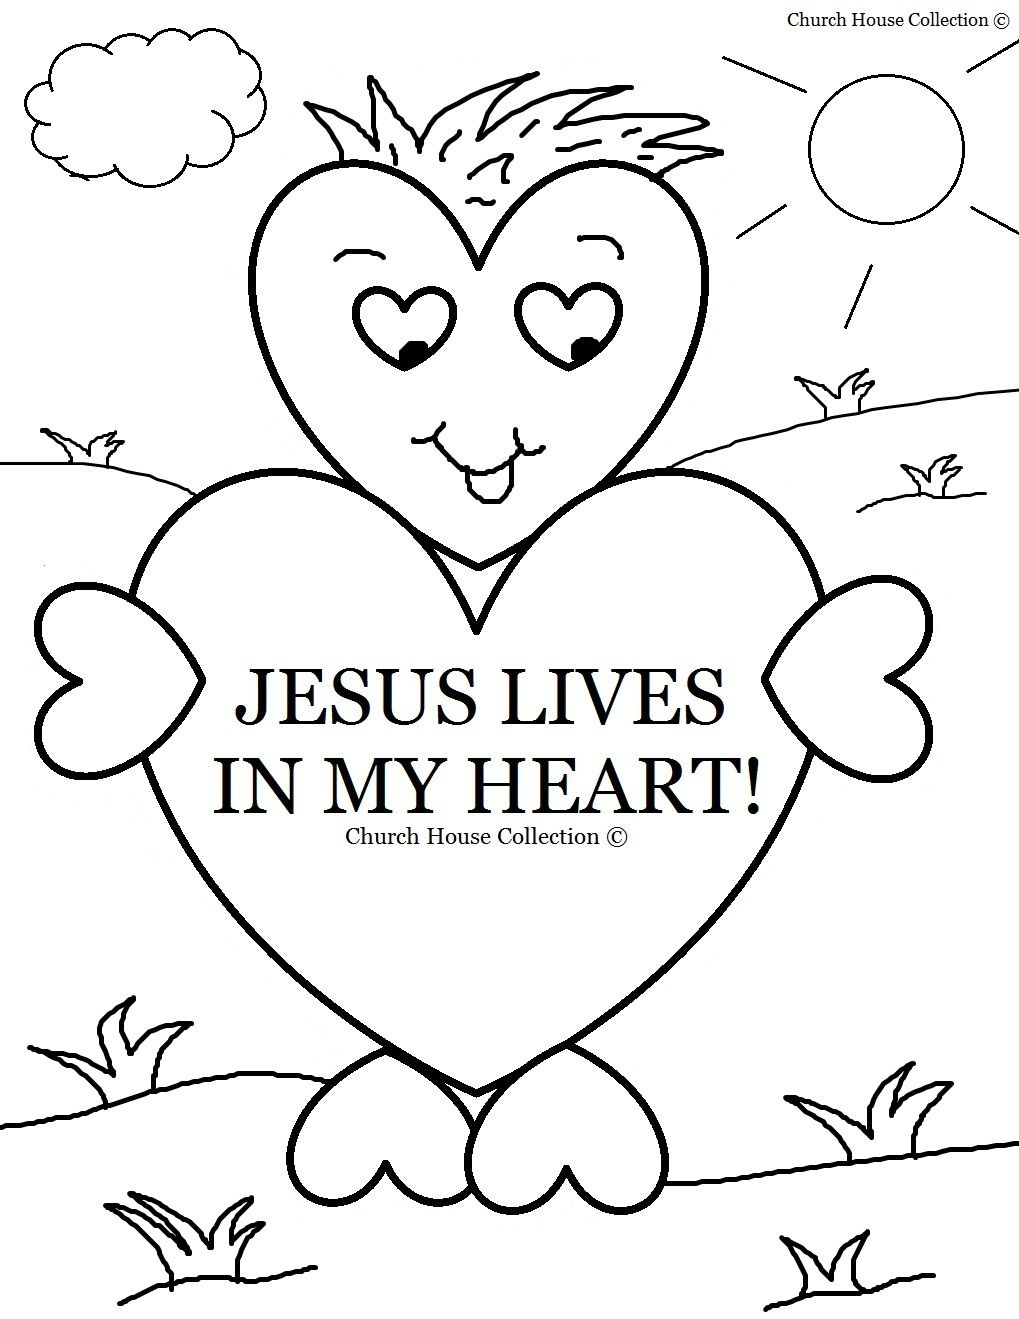 toddler coloring pages to print. Valentine s Day Heart Jesus Lives In my Coloring Page Sheet For Kids  Sunday school children church School Pages My